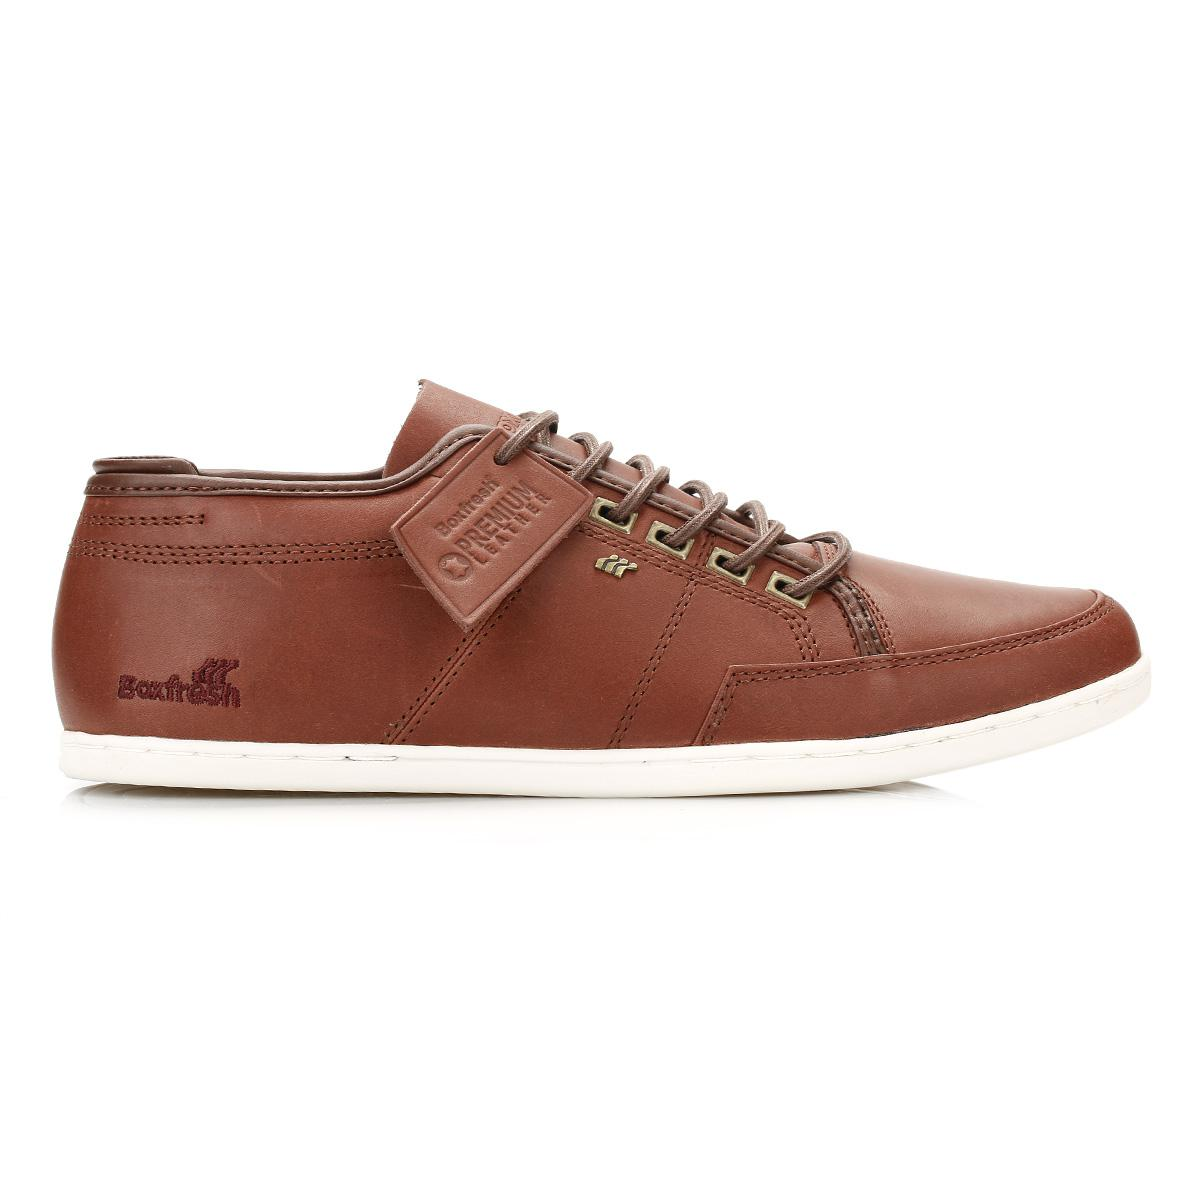 ... Fresh Mens Russet Sparko Leather Trainers for Men | Lyst. View  Fullscreen